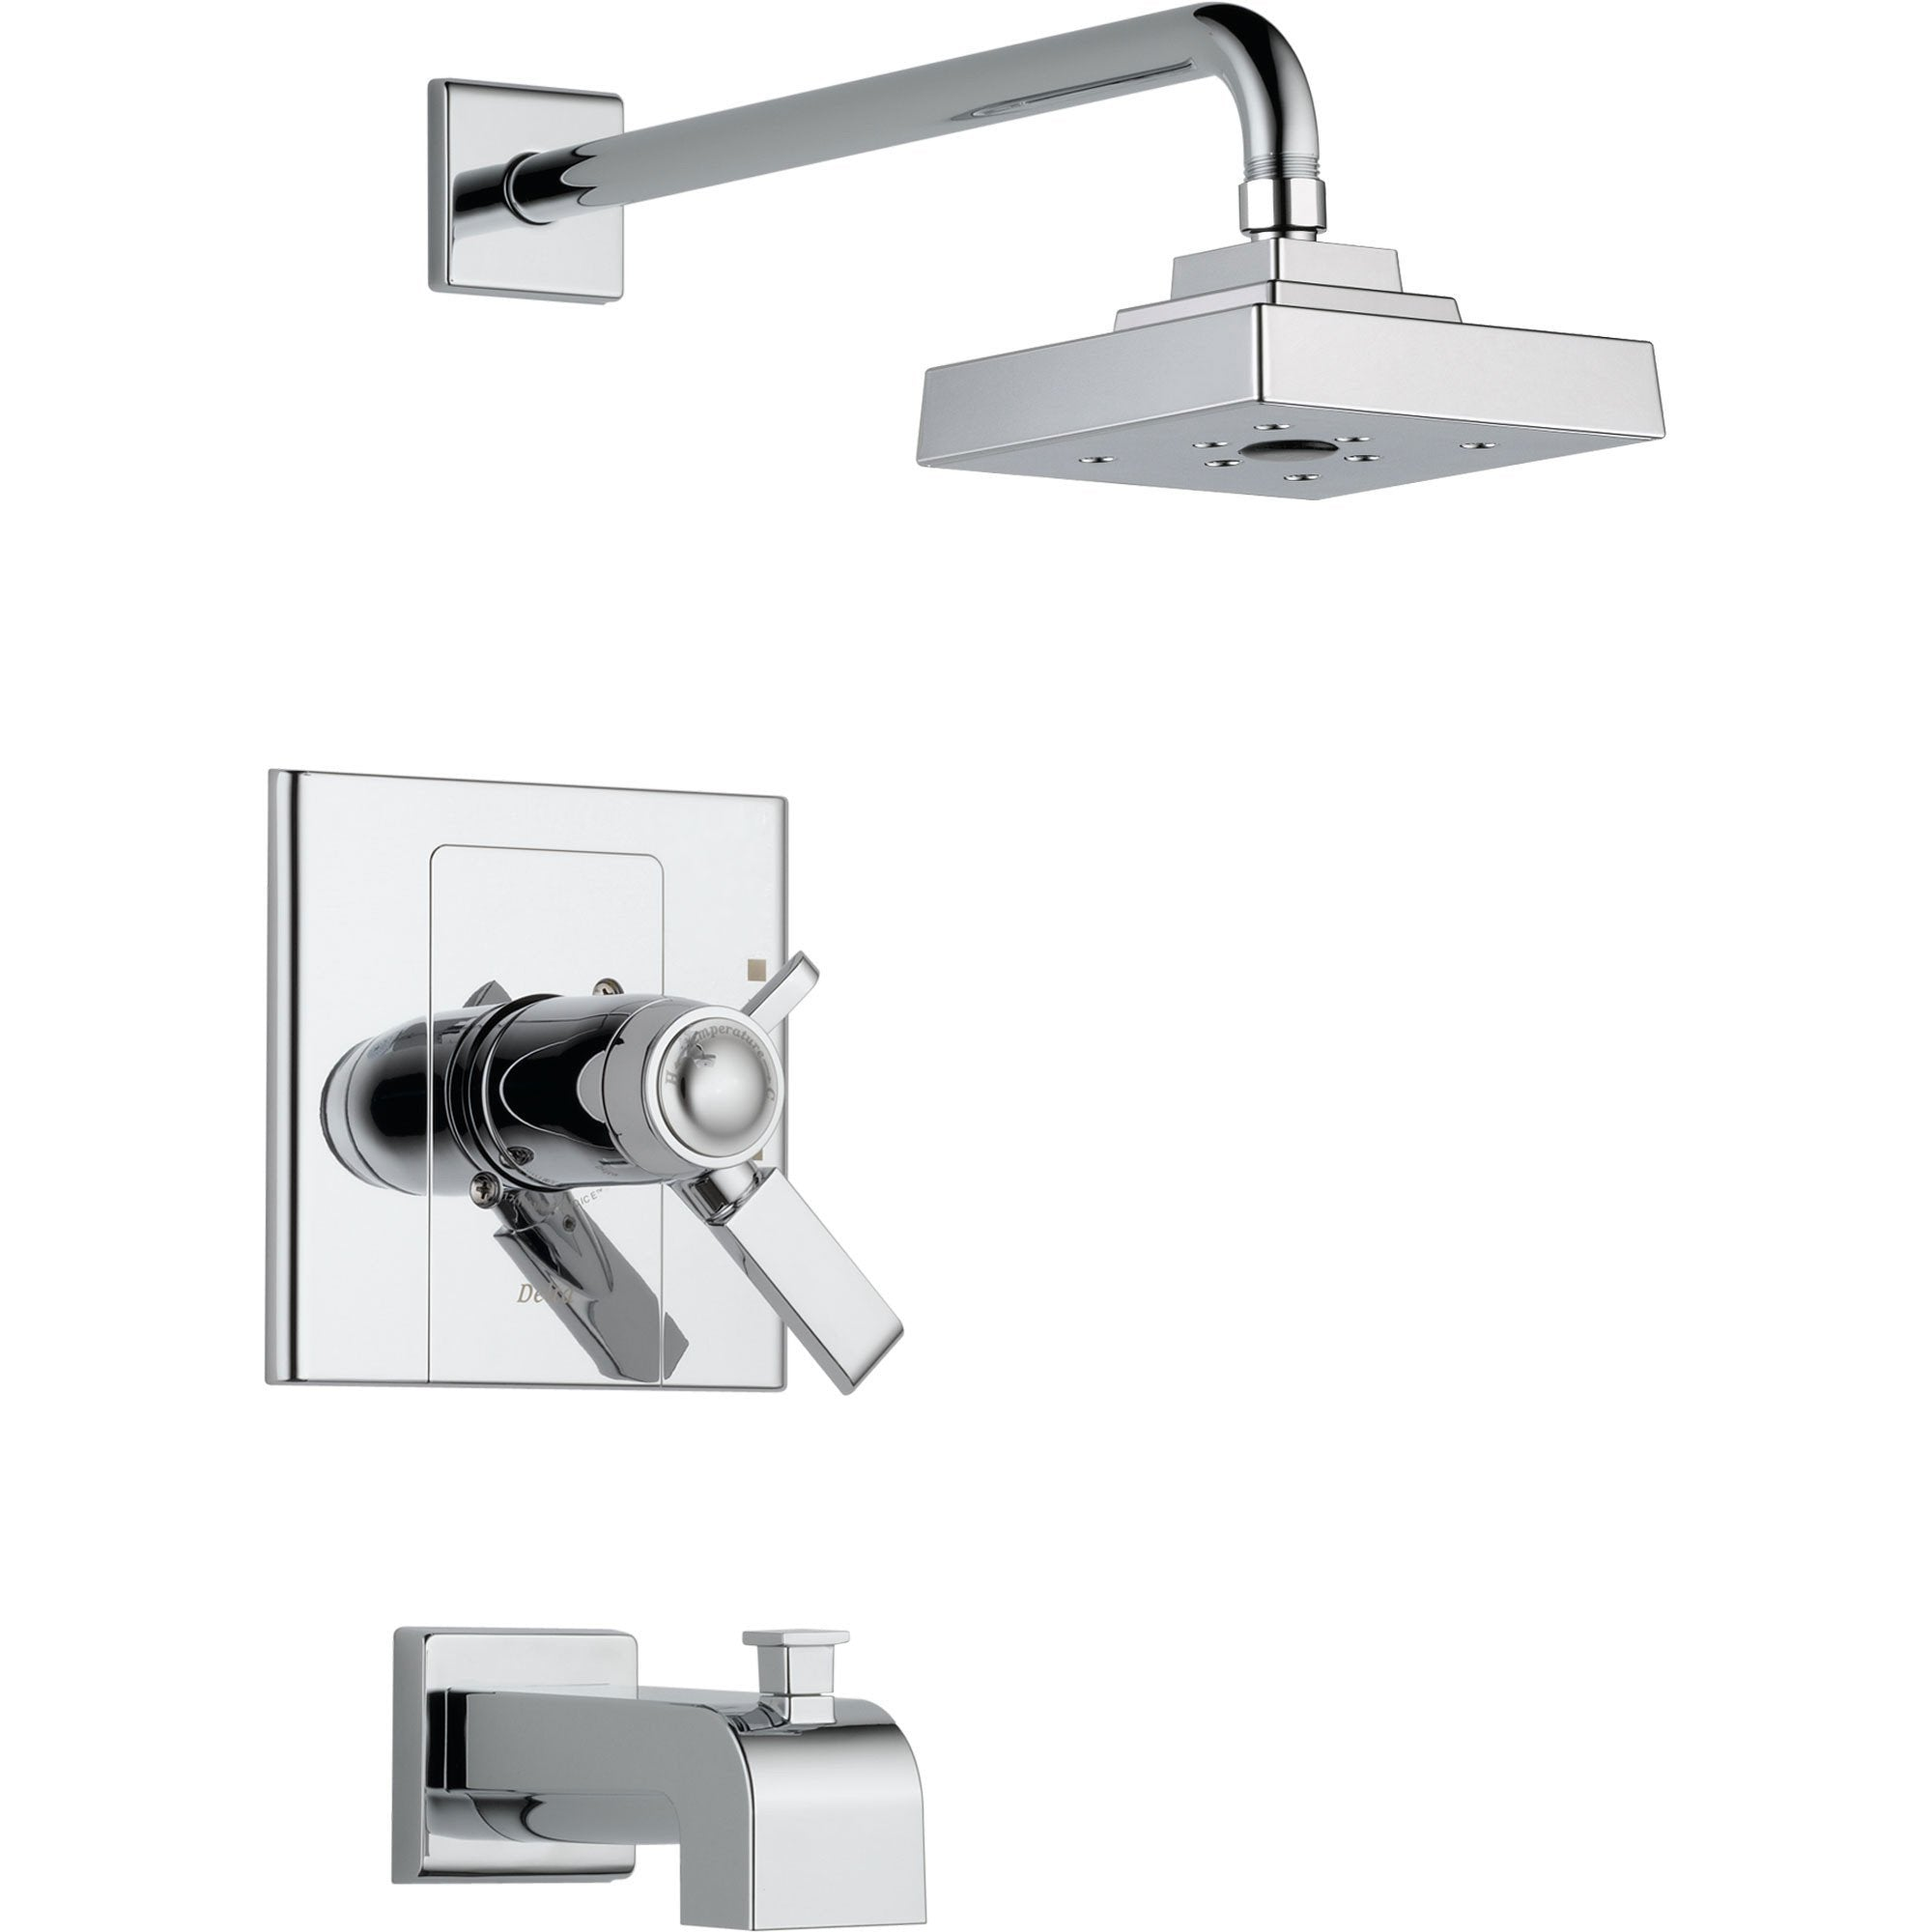 Delta Arzo Thermostatic Dual Control Chrome Tub & Shower Faucet with Valve D511V